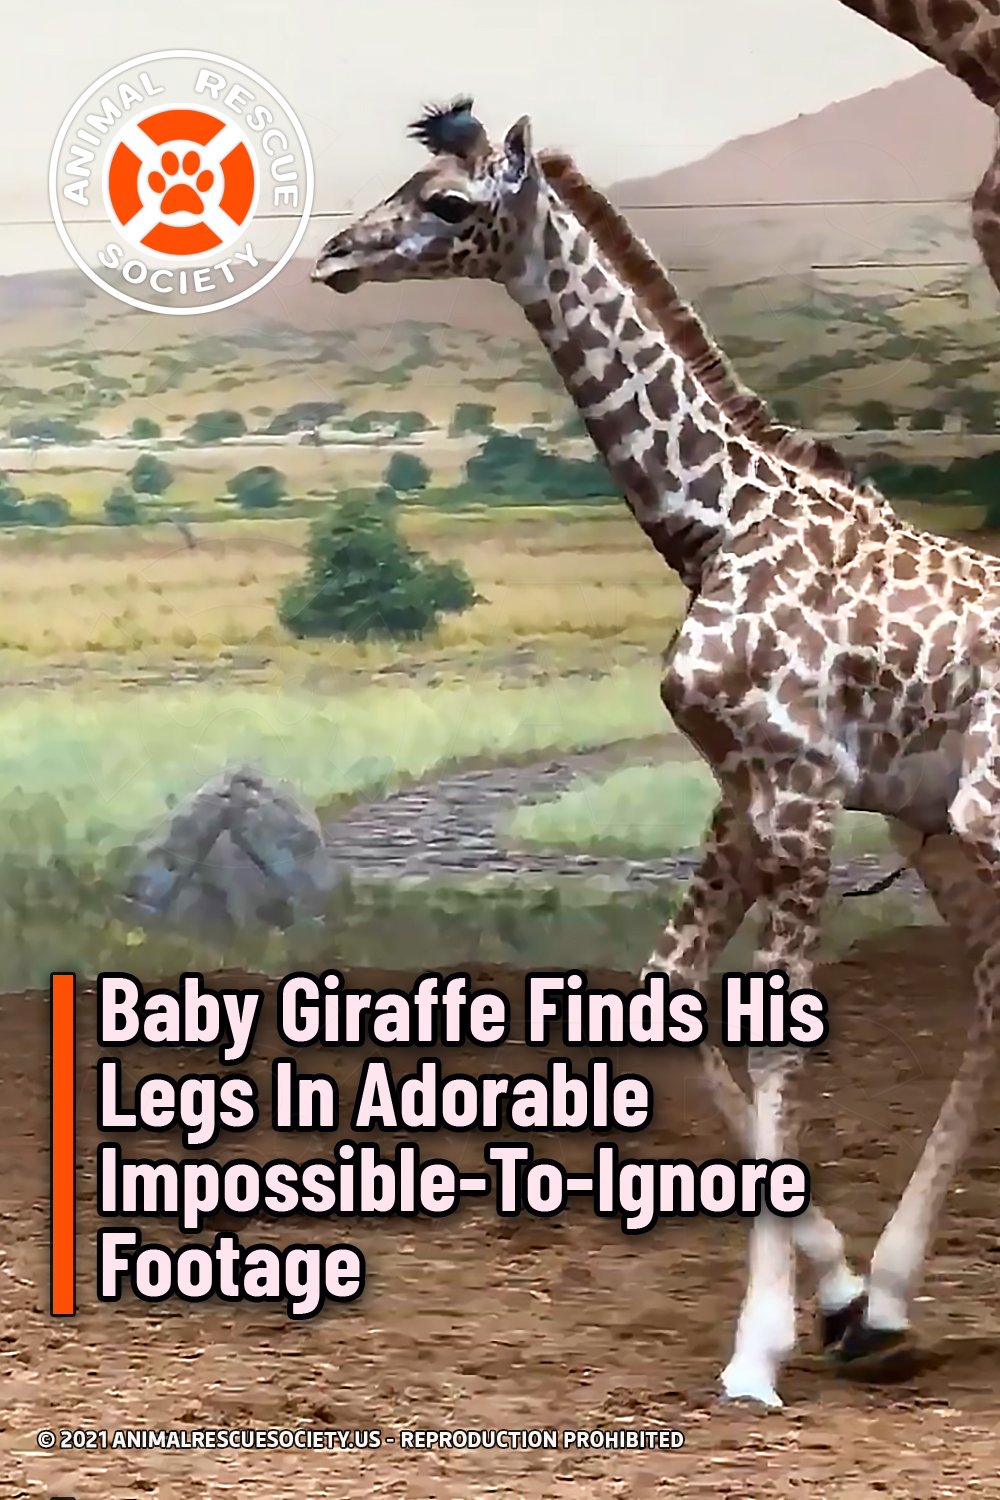 Baby Giraffe Finds His Legs In Adorable Impossible-To-Ignore Footage